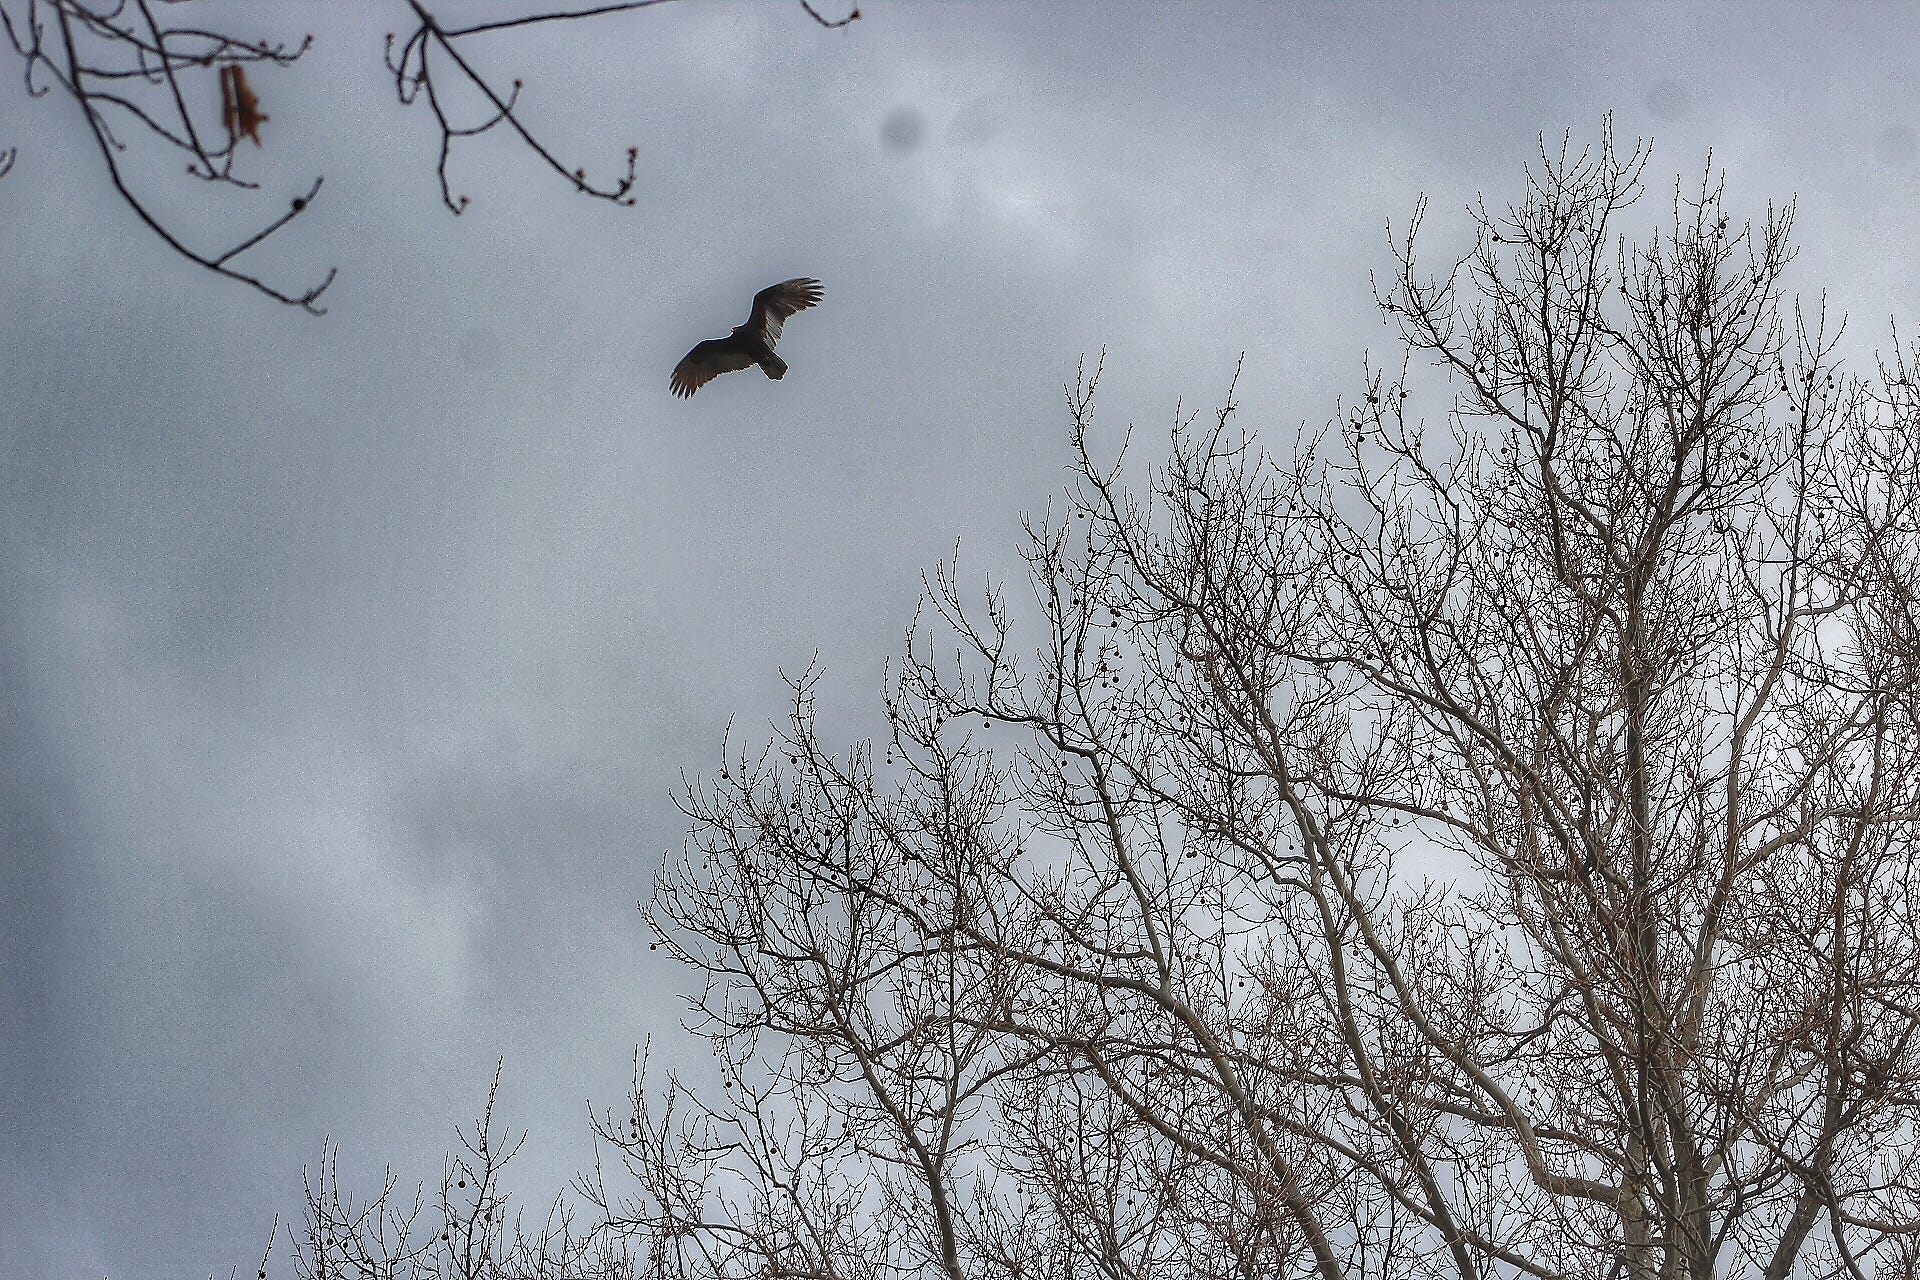 A large bird lies over my home in Detroit on April 15, 2020. It is a rare sighting in my area. Luckily, I happen to be in the right place at the right time.